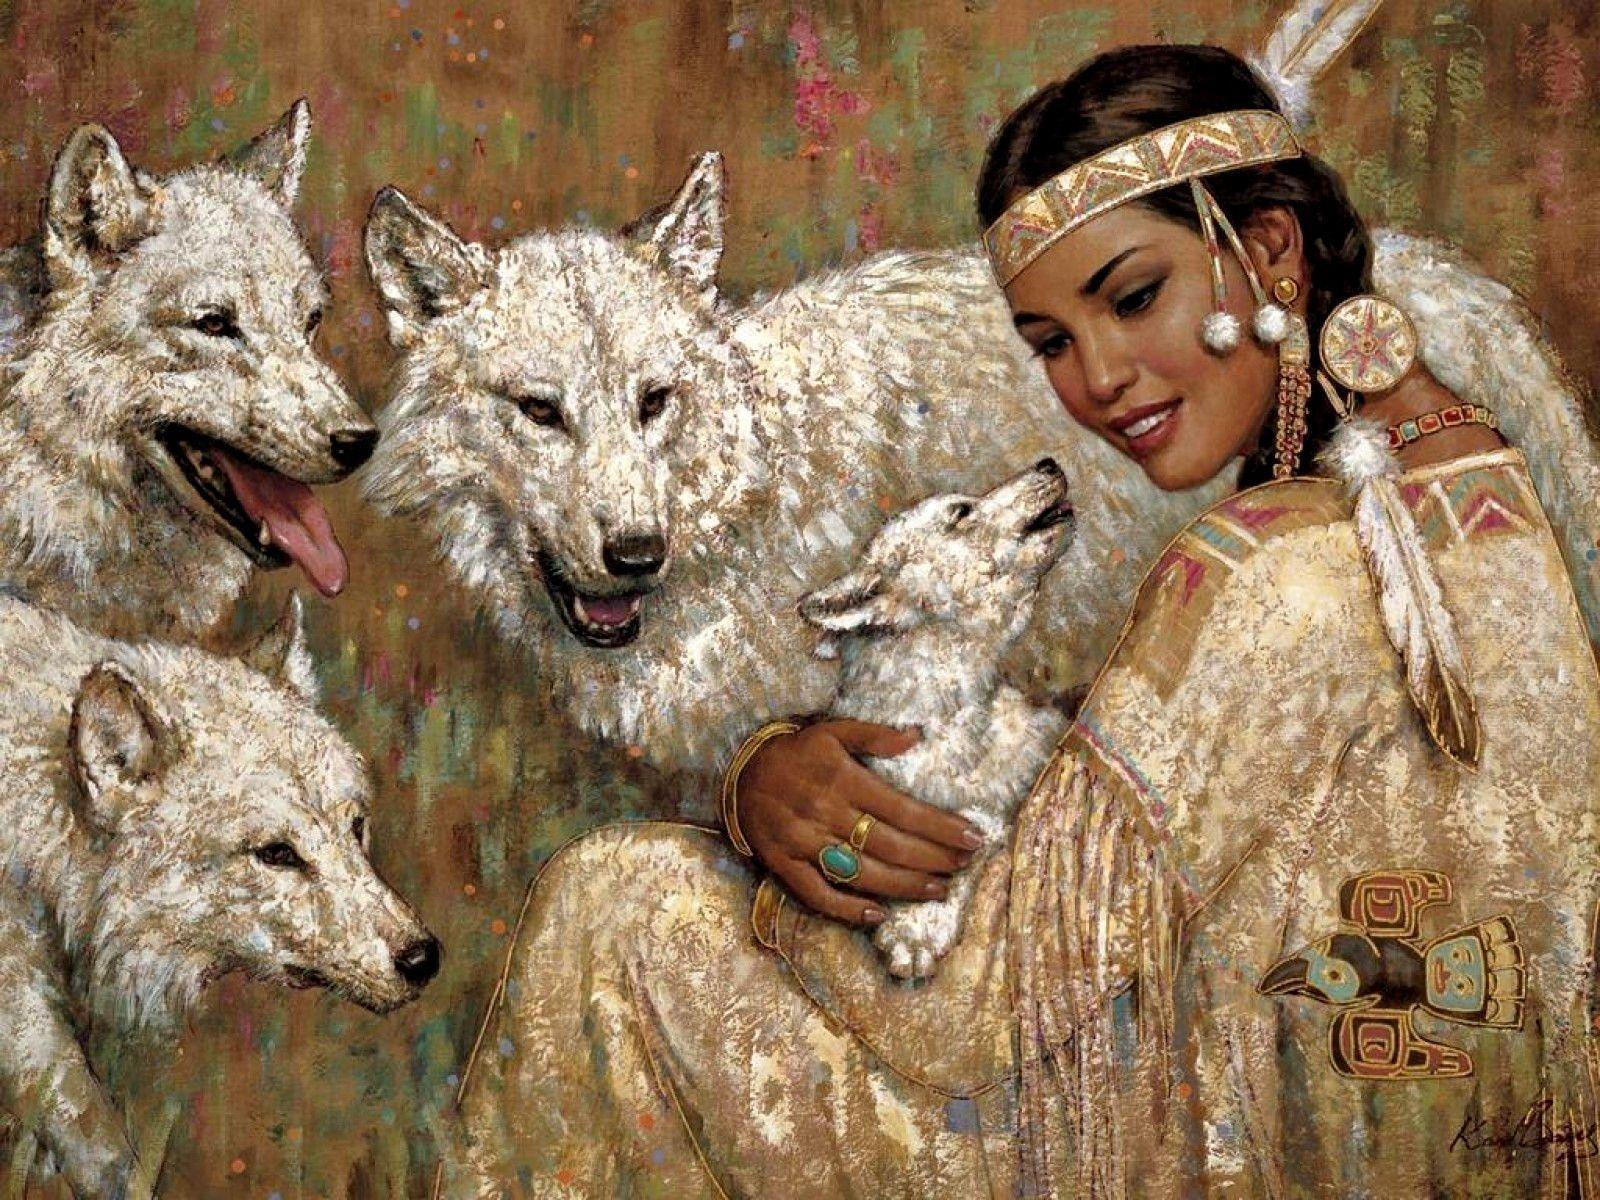 artistic native american wallpaper 1600x1200 px free download